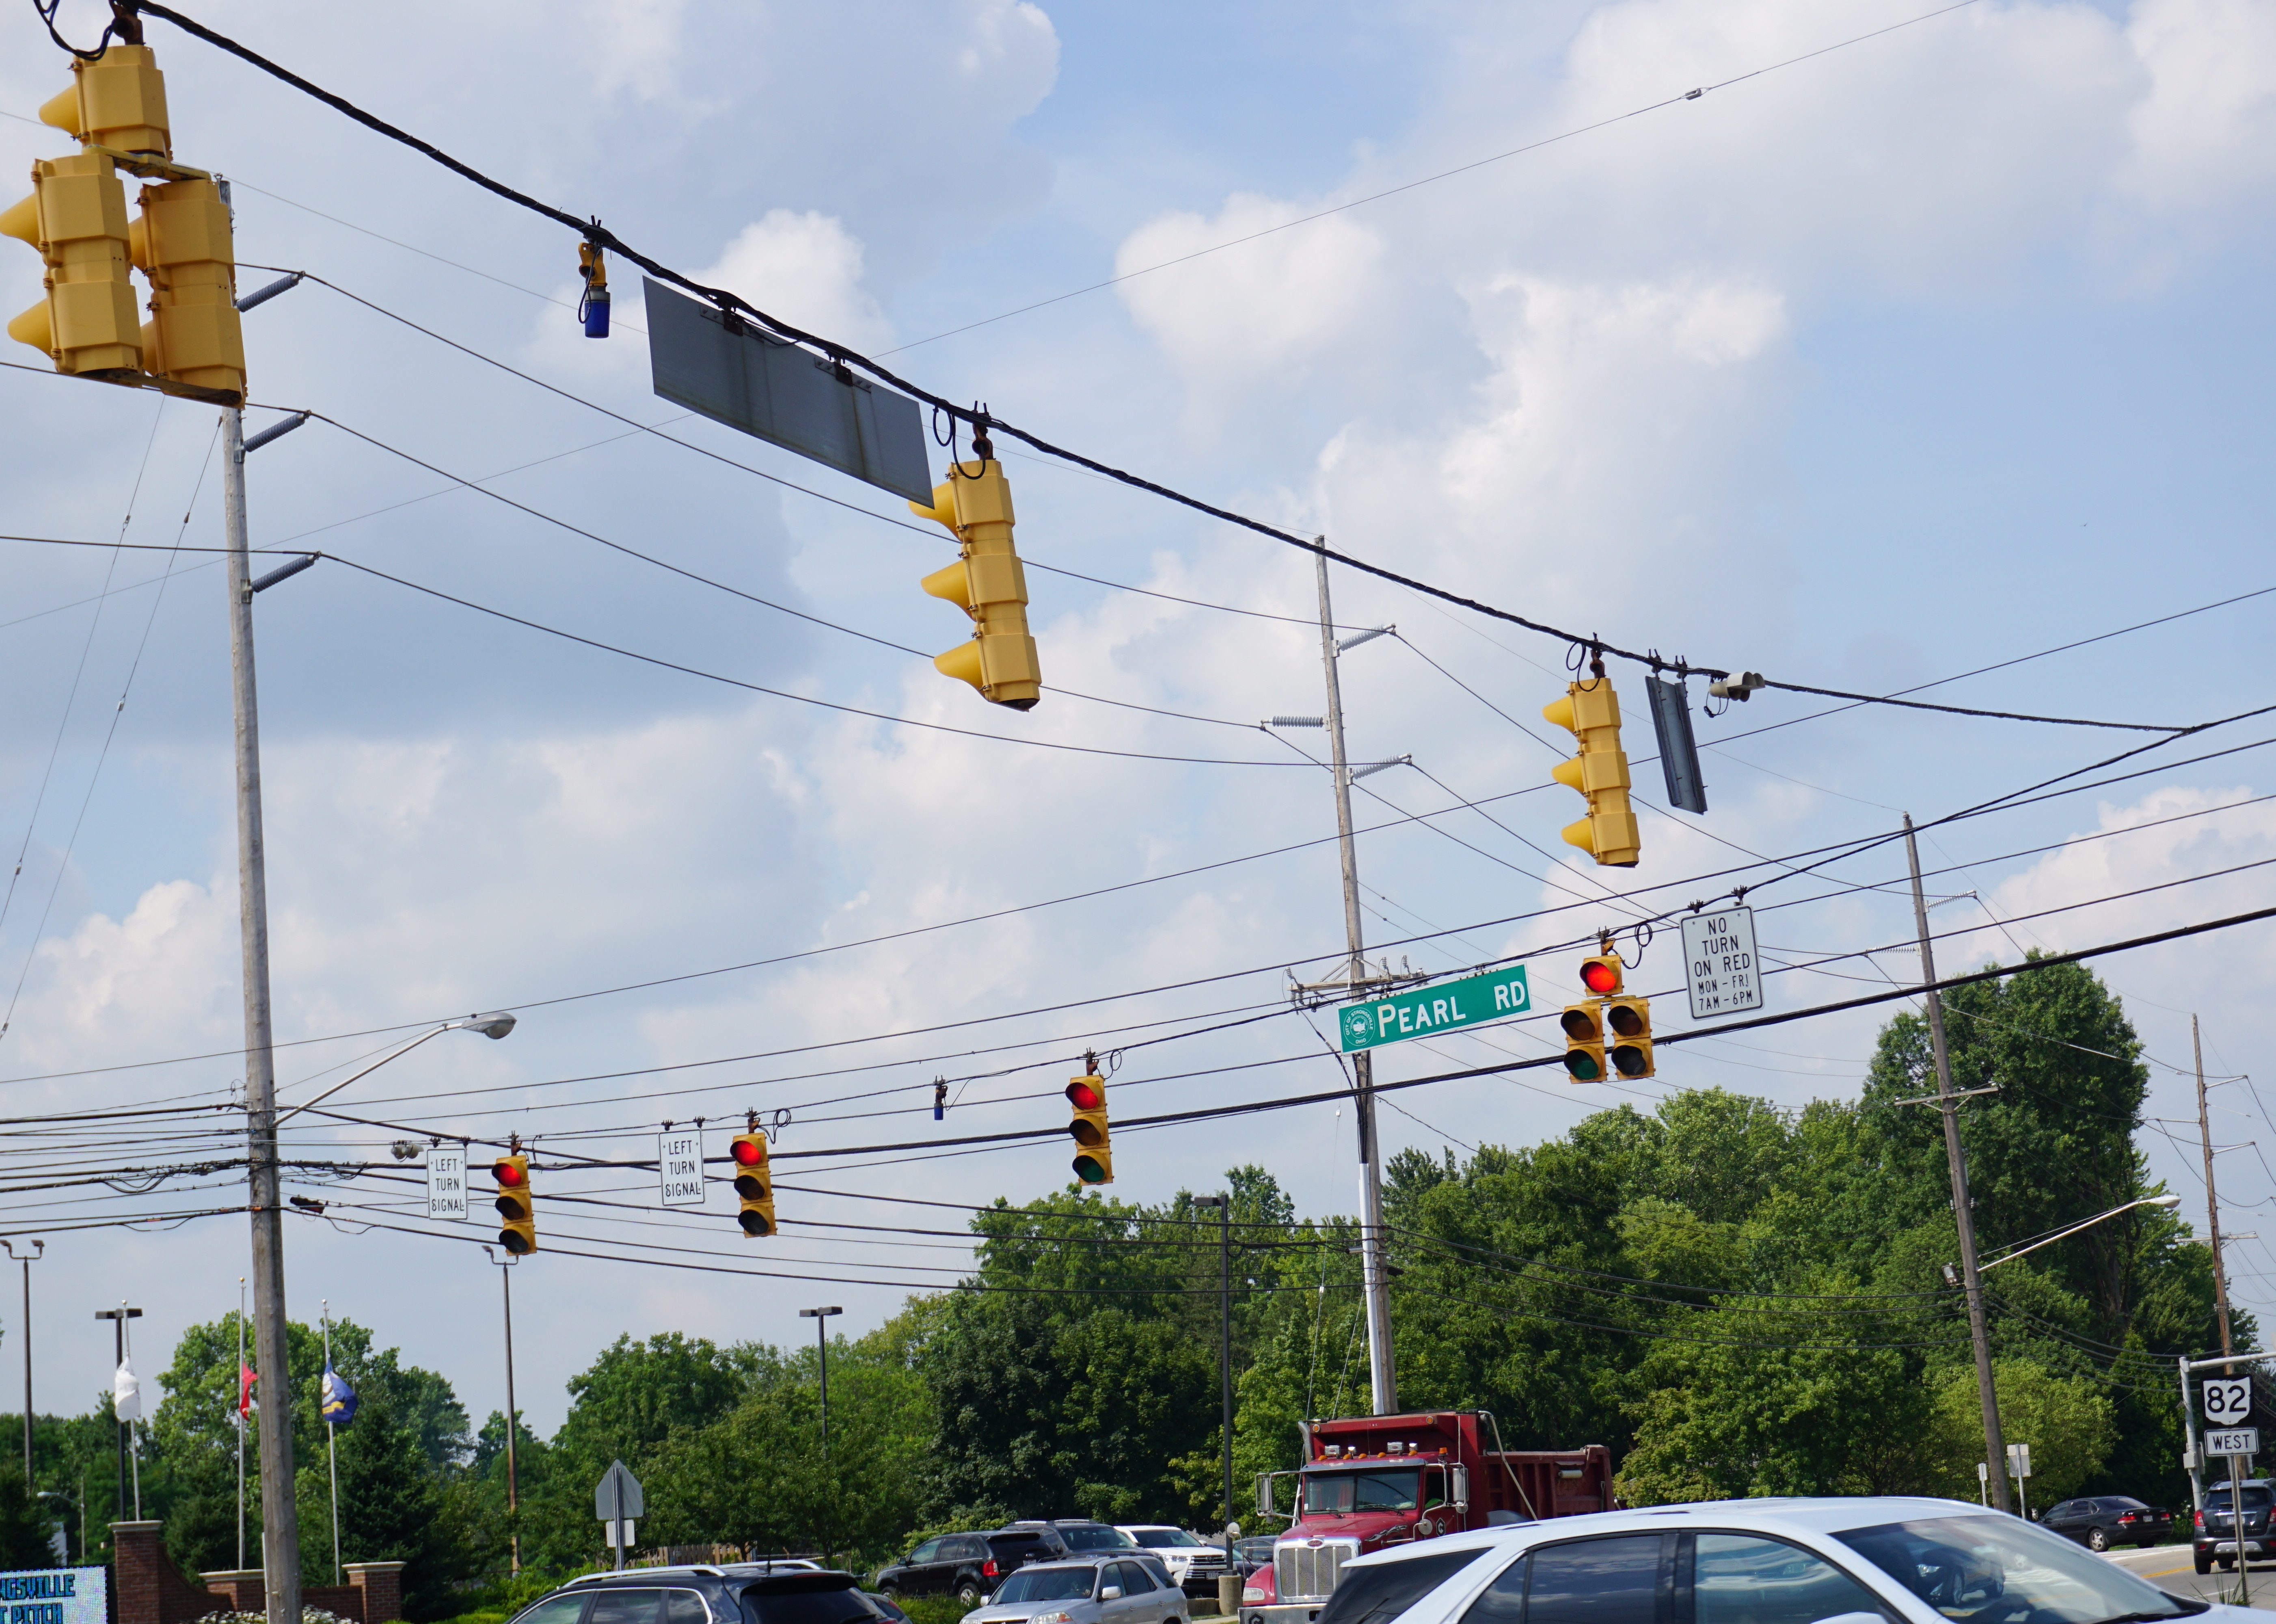 Project to Improve Safety at Pearl and Royalton